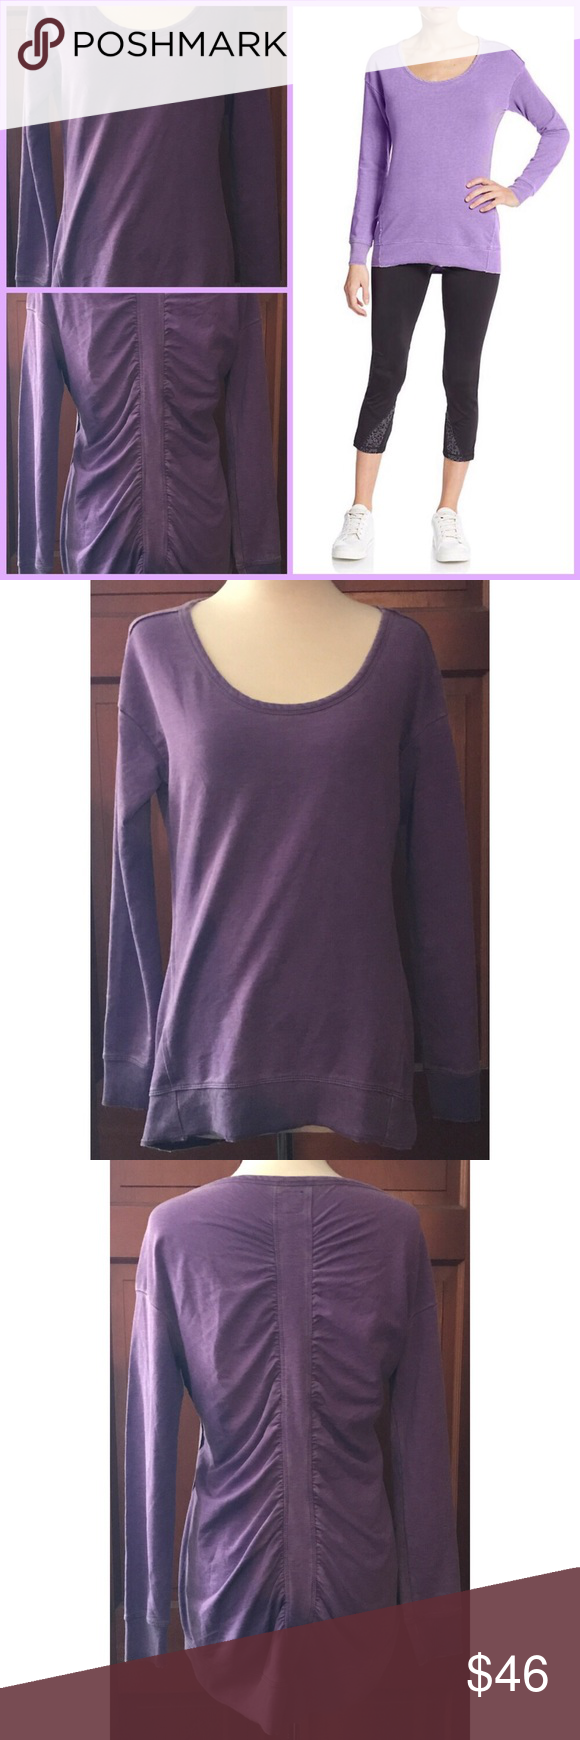 NWOT Saks BLUE Soft Cotton Jersey Top